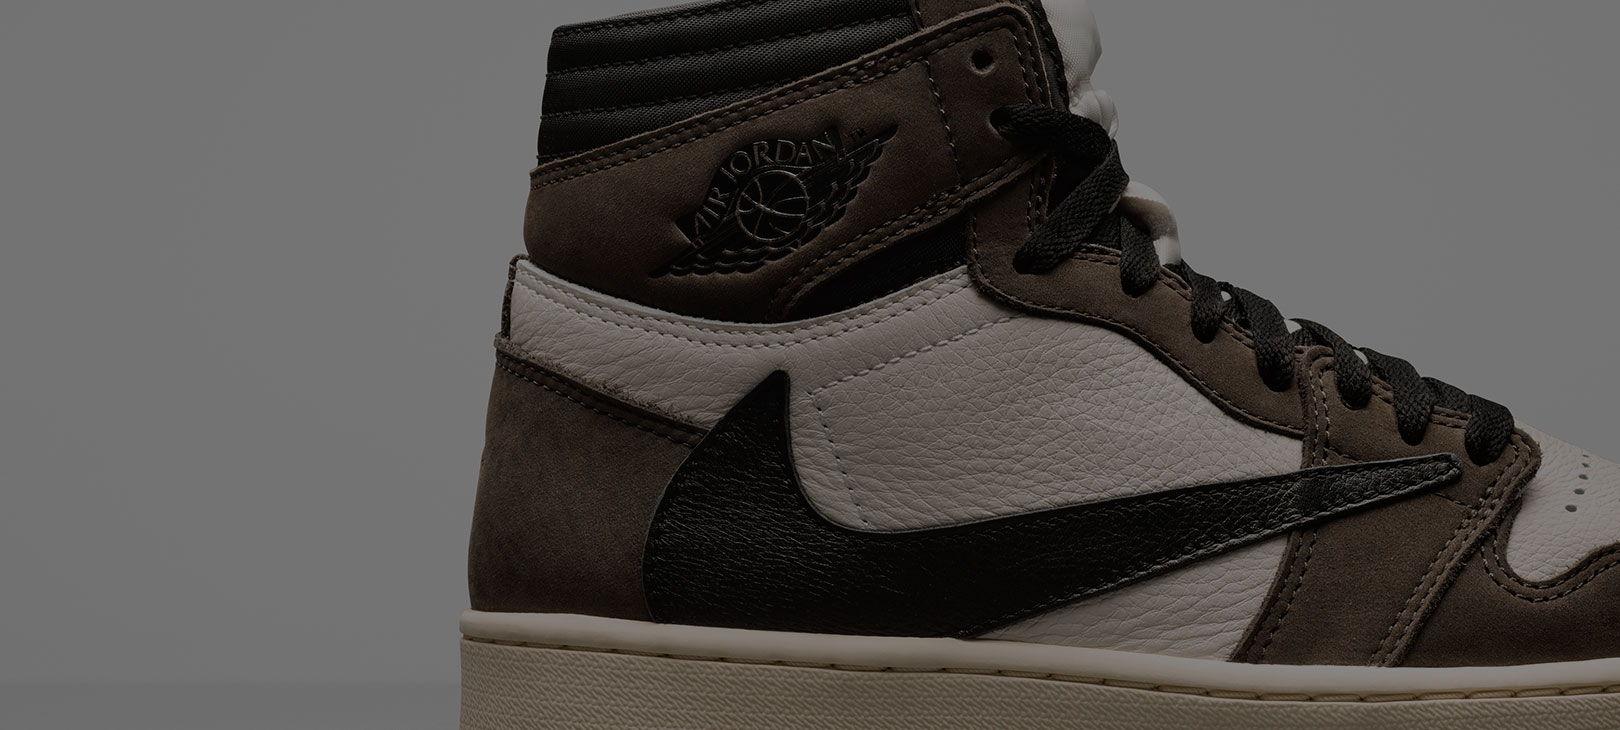 wholesale dealer 78b20 39ccb Travis Scott x Air Jordan 1 · Releasing May 11th